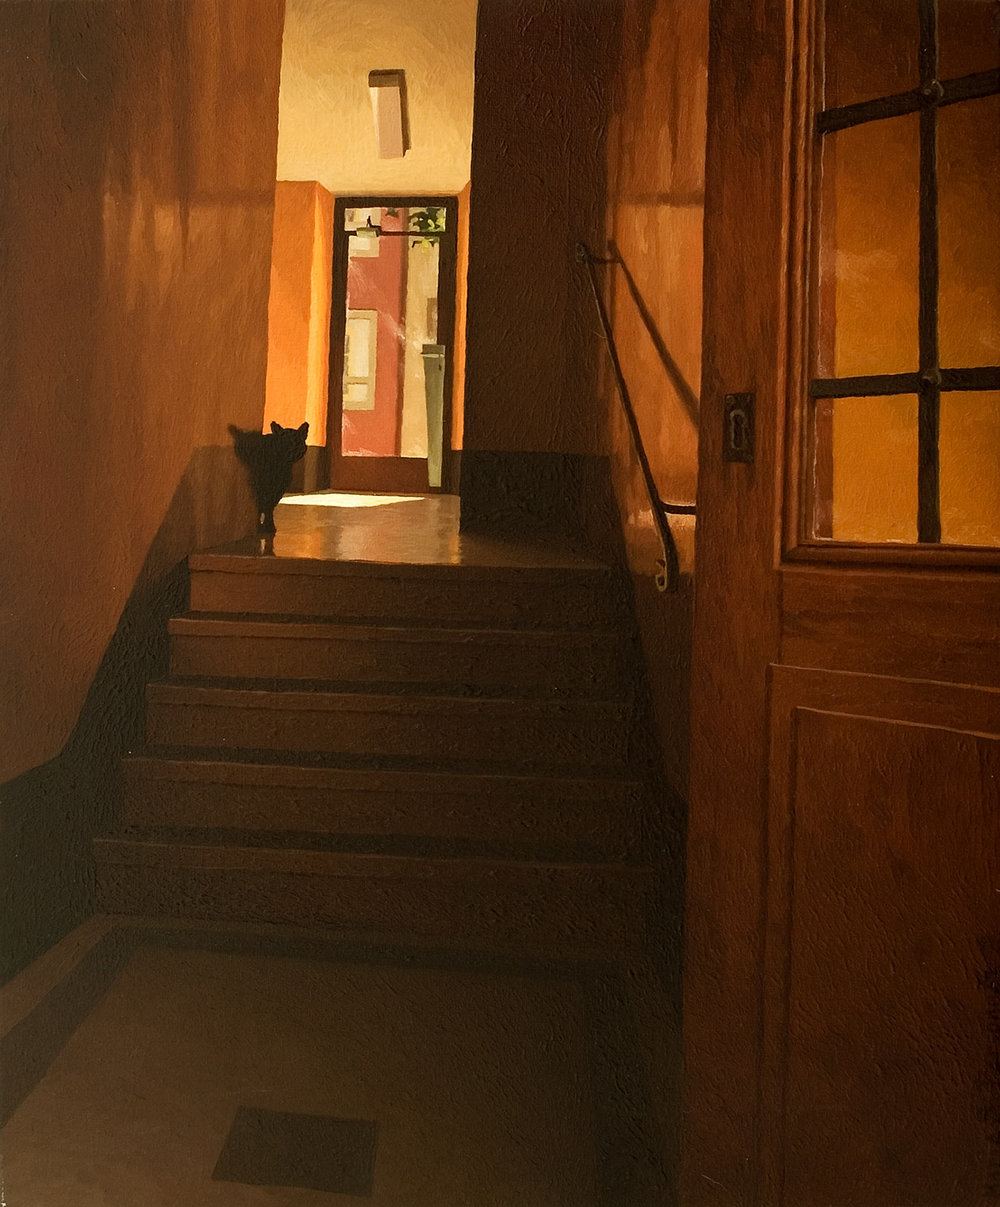 A building entrance hall with cat